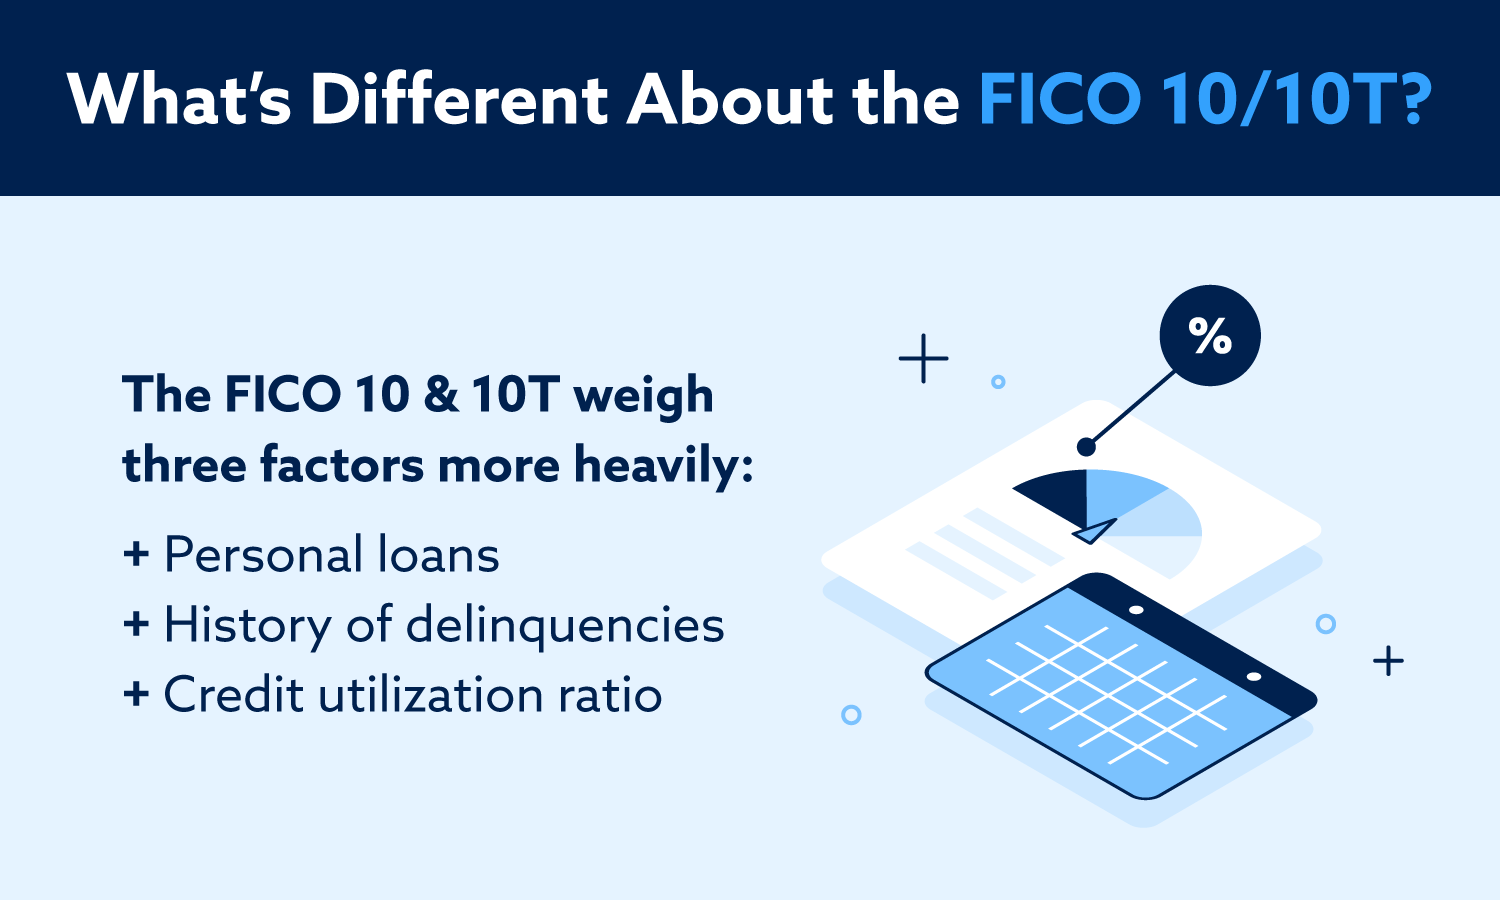 What's different about the FICO 10/10T? They weigh personal loans, history of delinquencies, and credit utilization ratio more heavily.